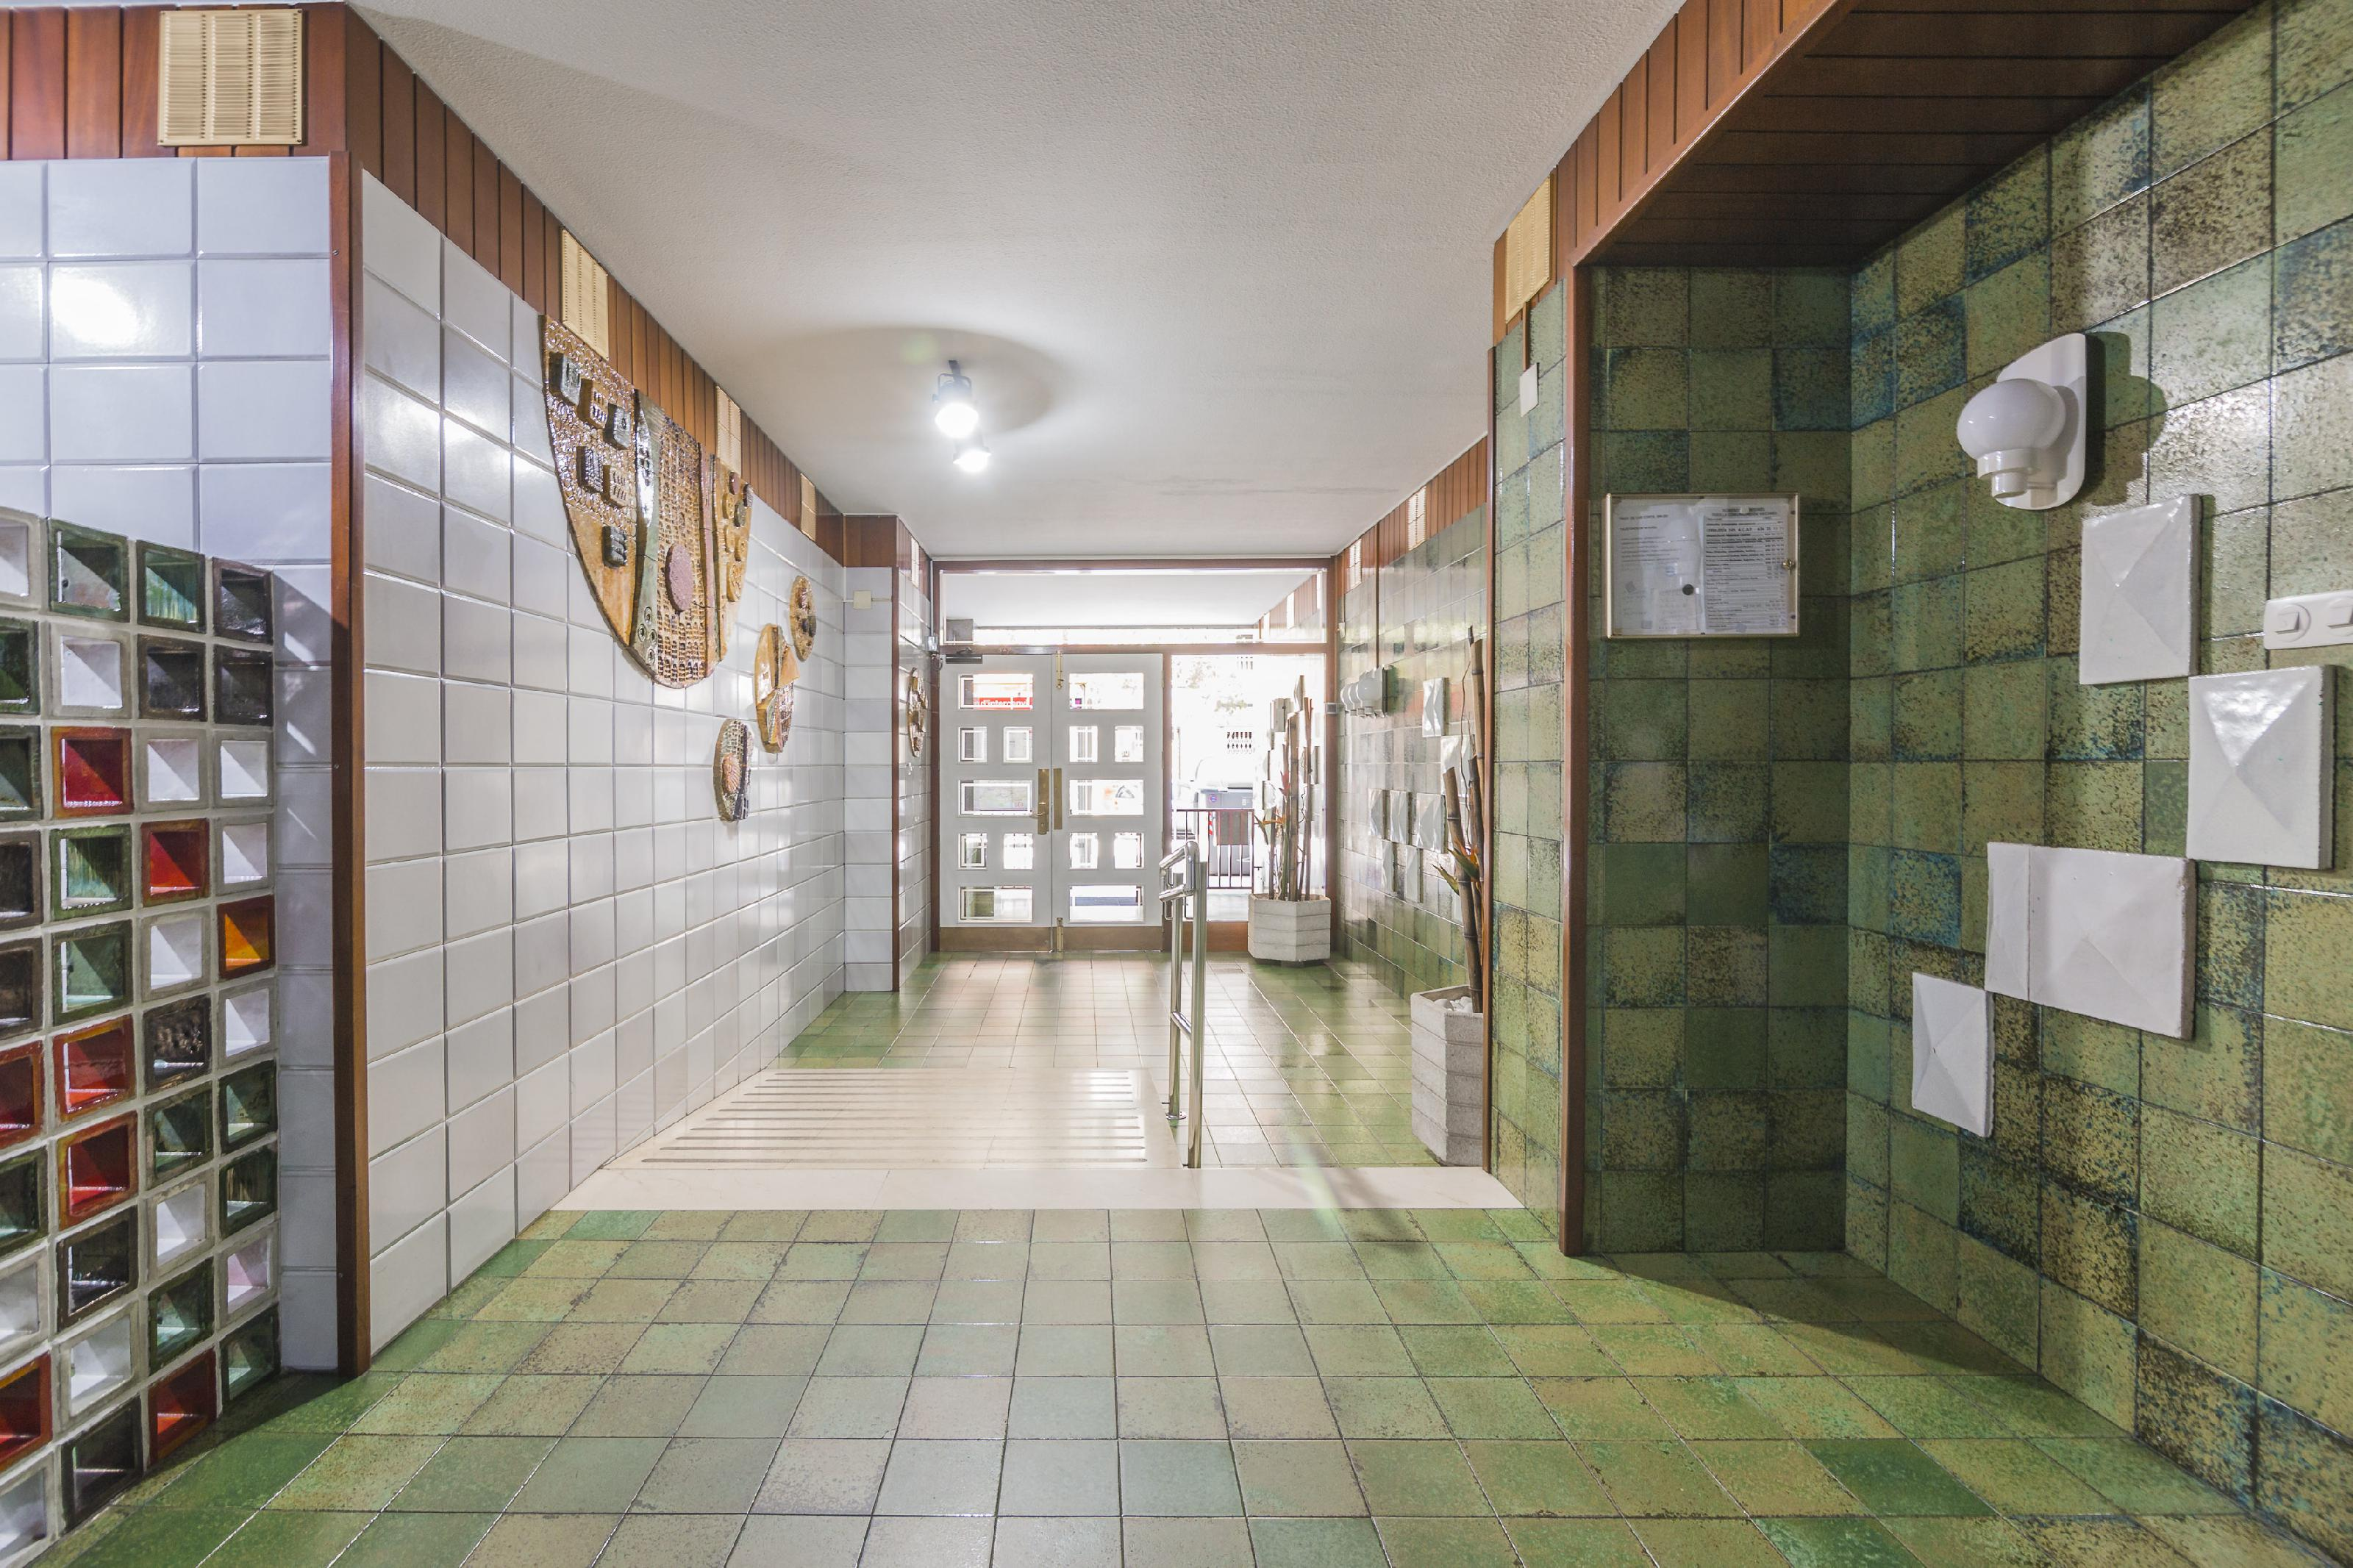 239426 Flat for sale in Les Corts, Les Corts 2